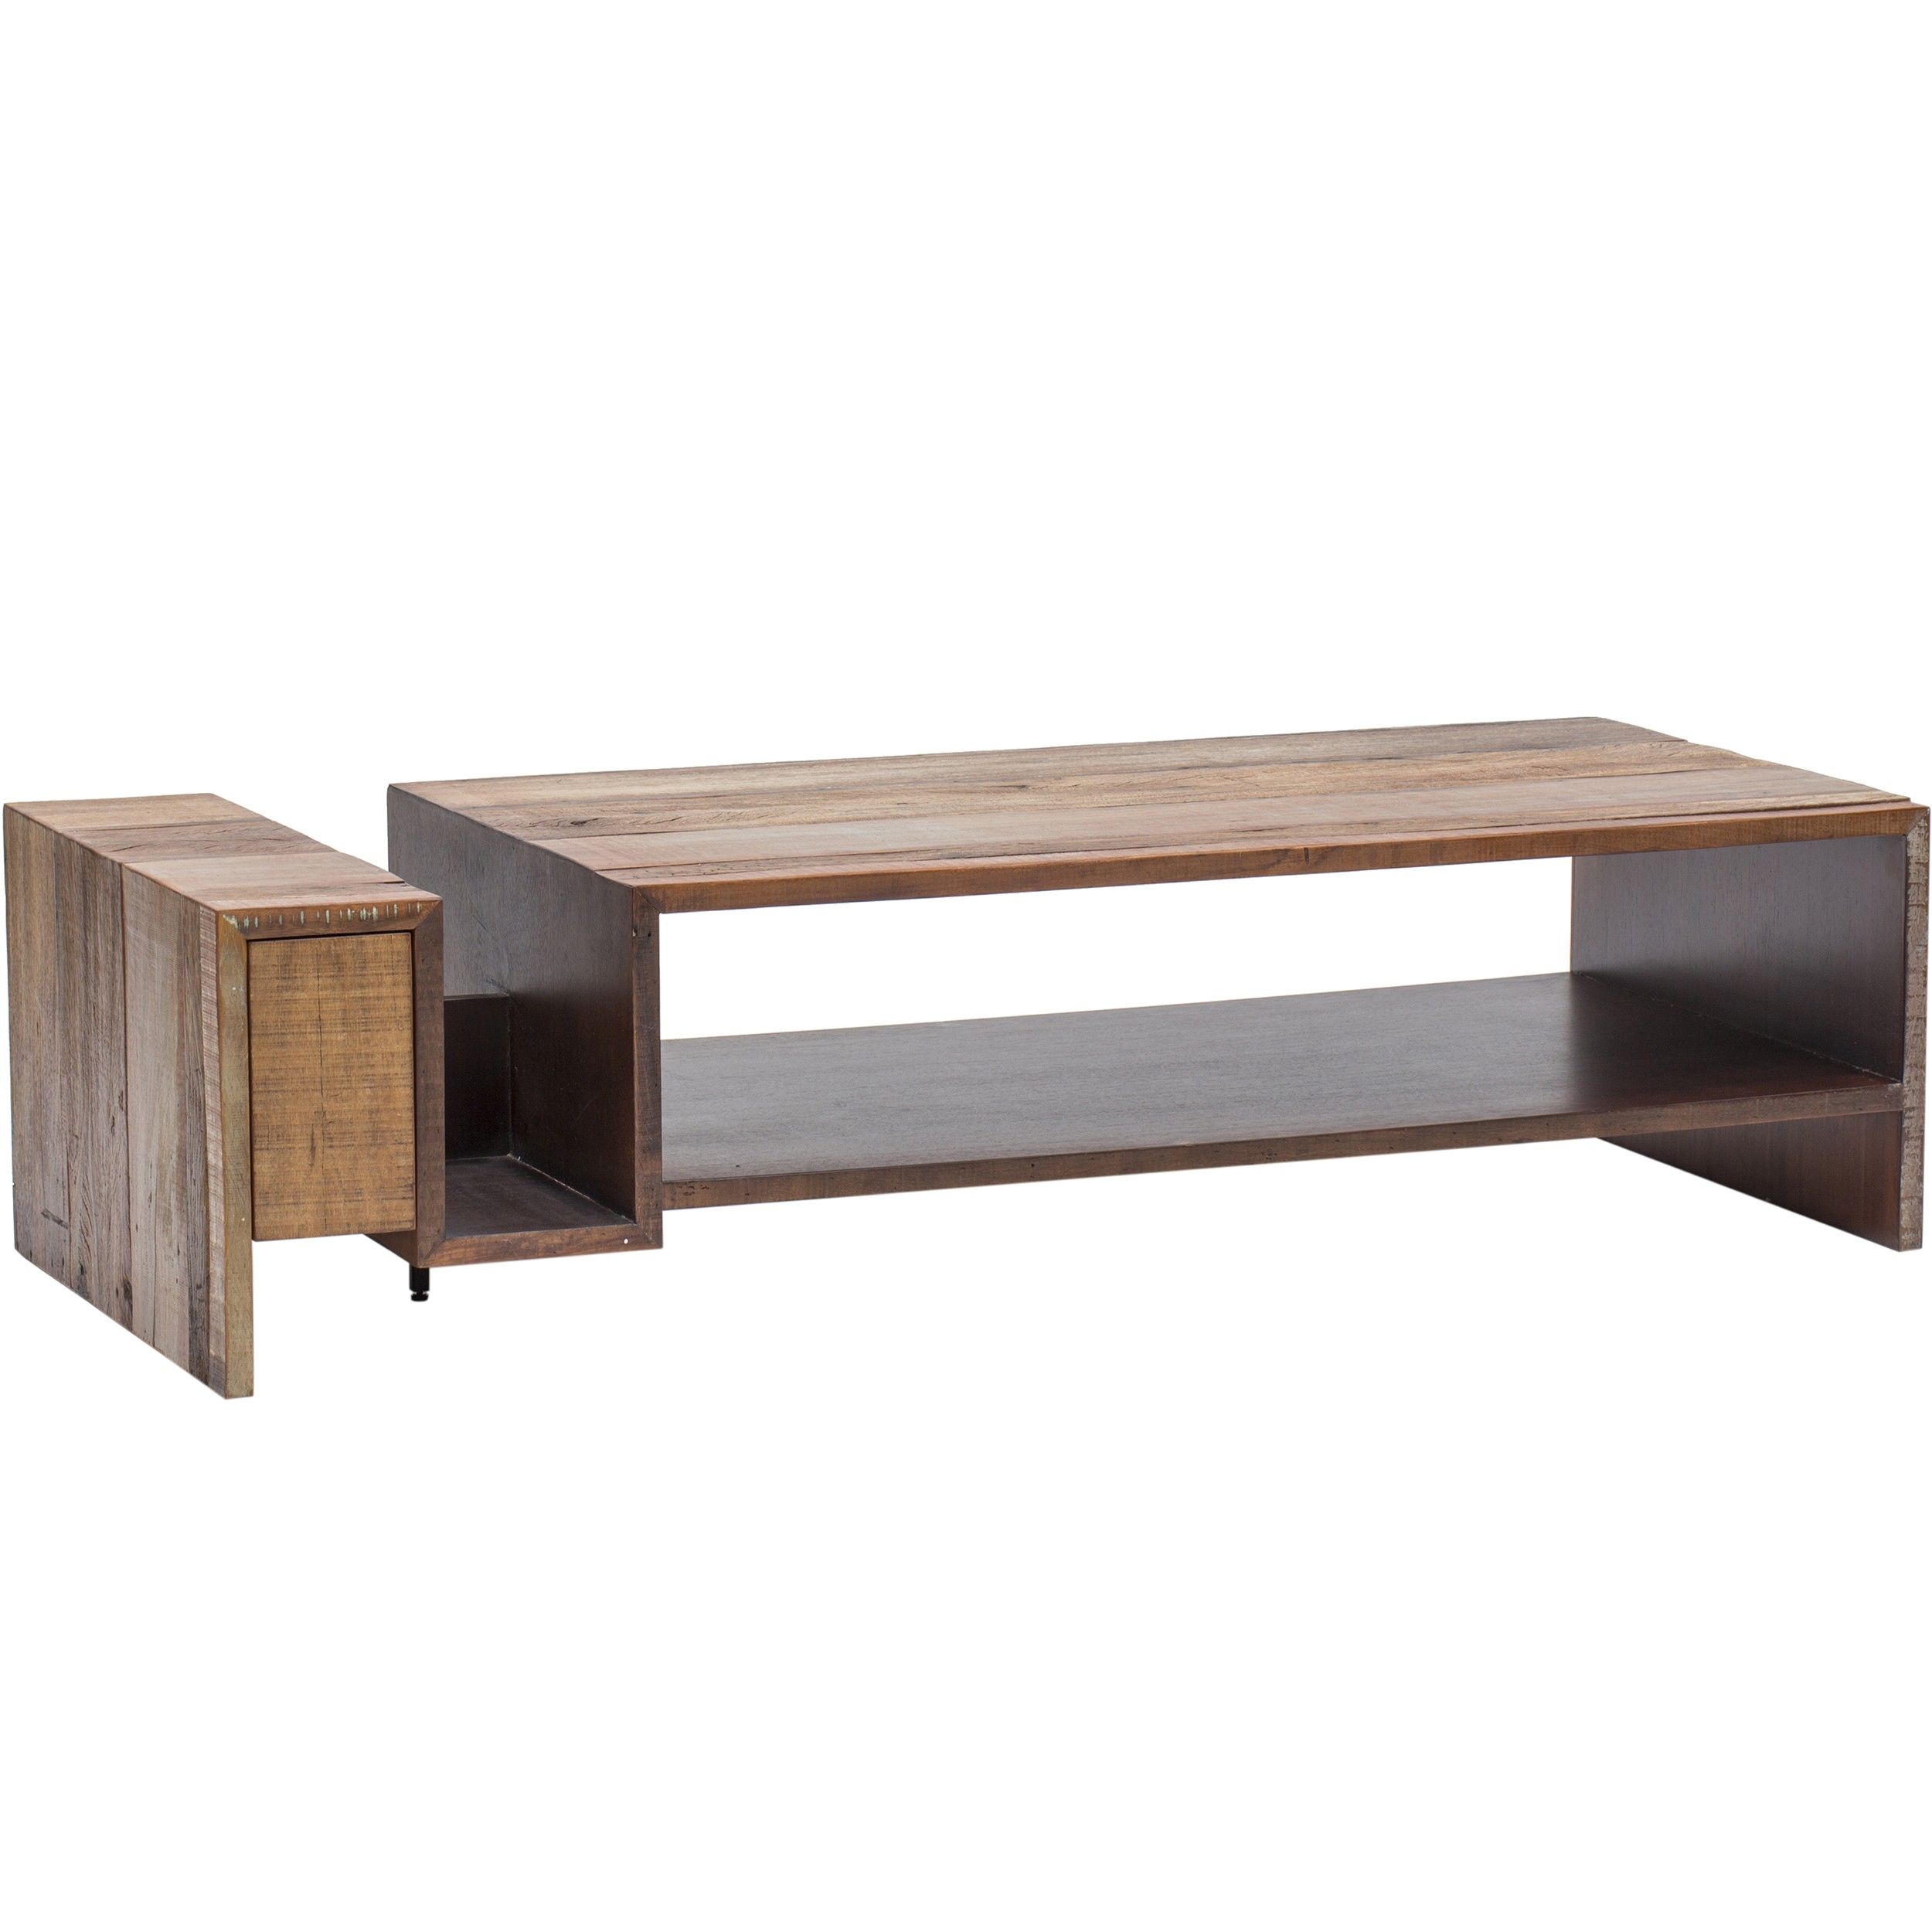 Avett Coffee Table $1,299.00